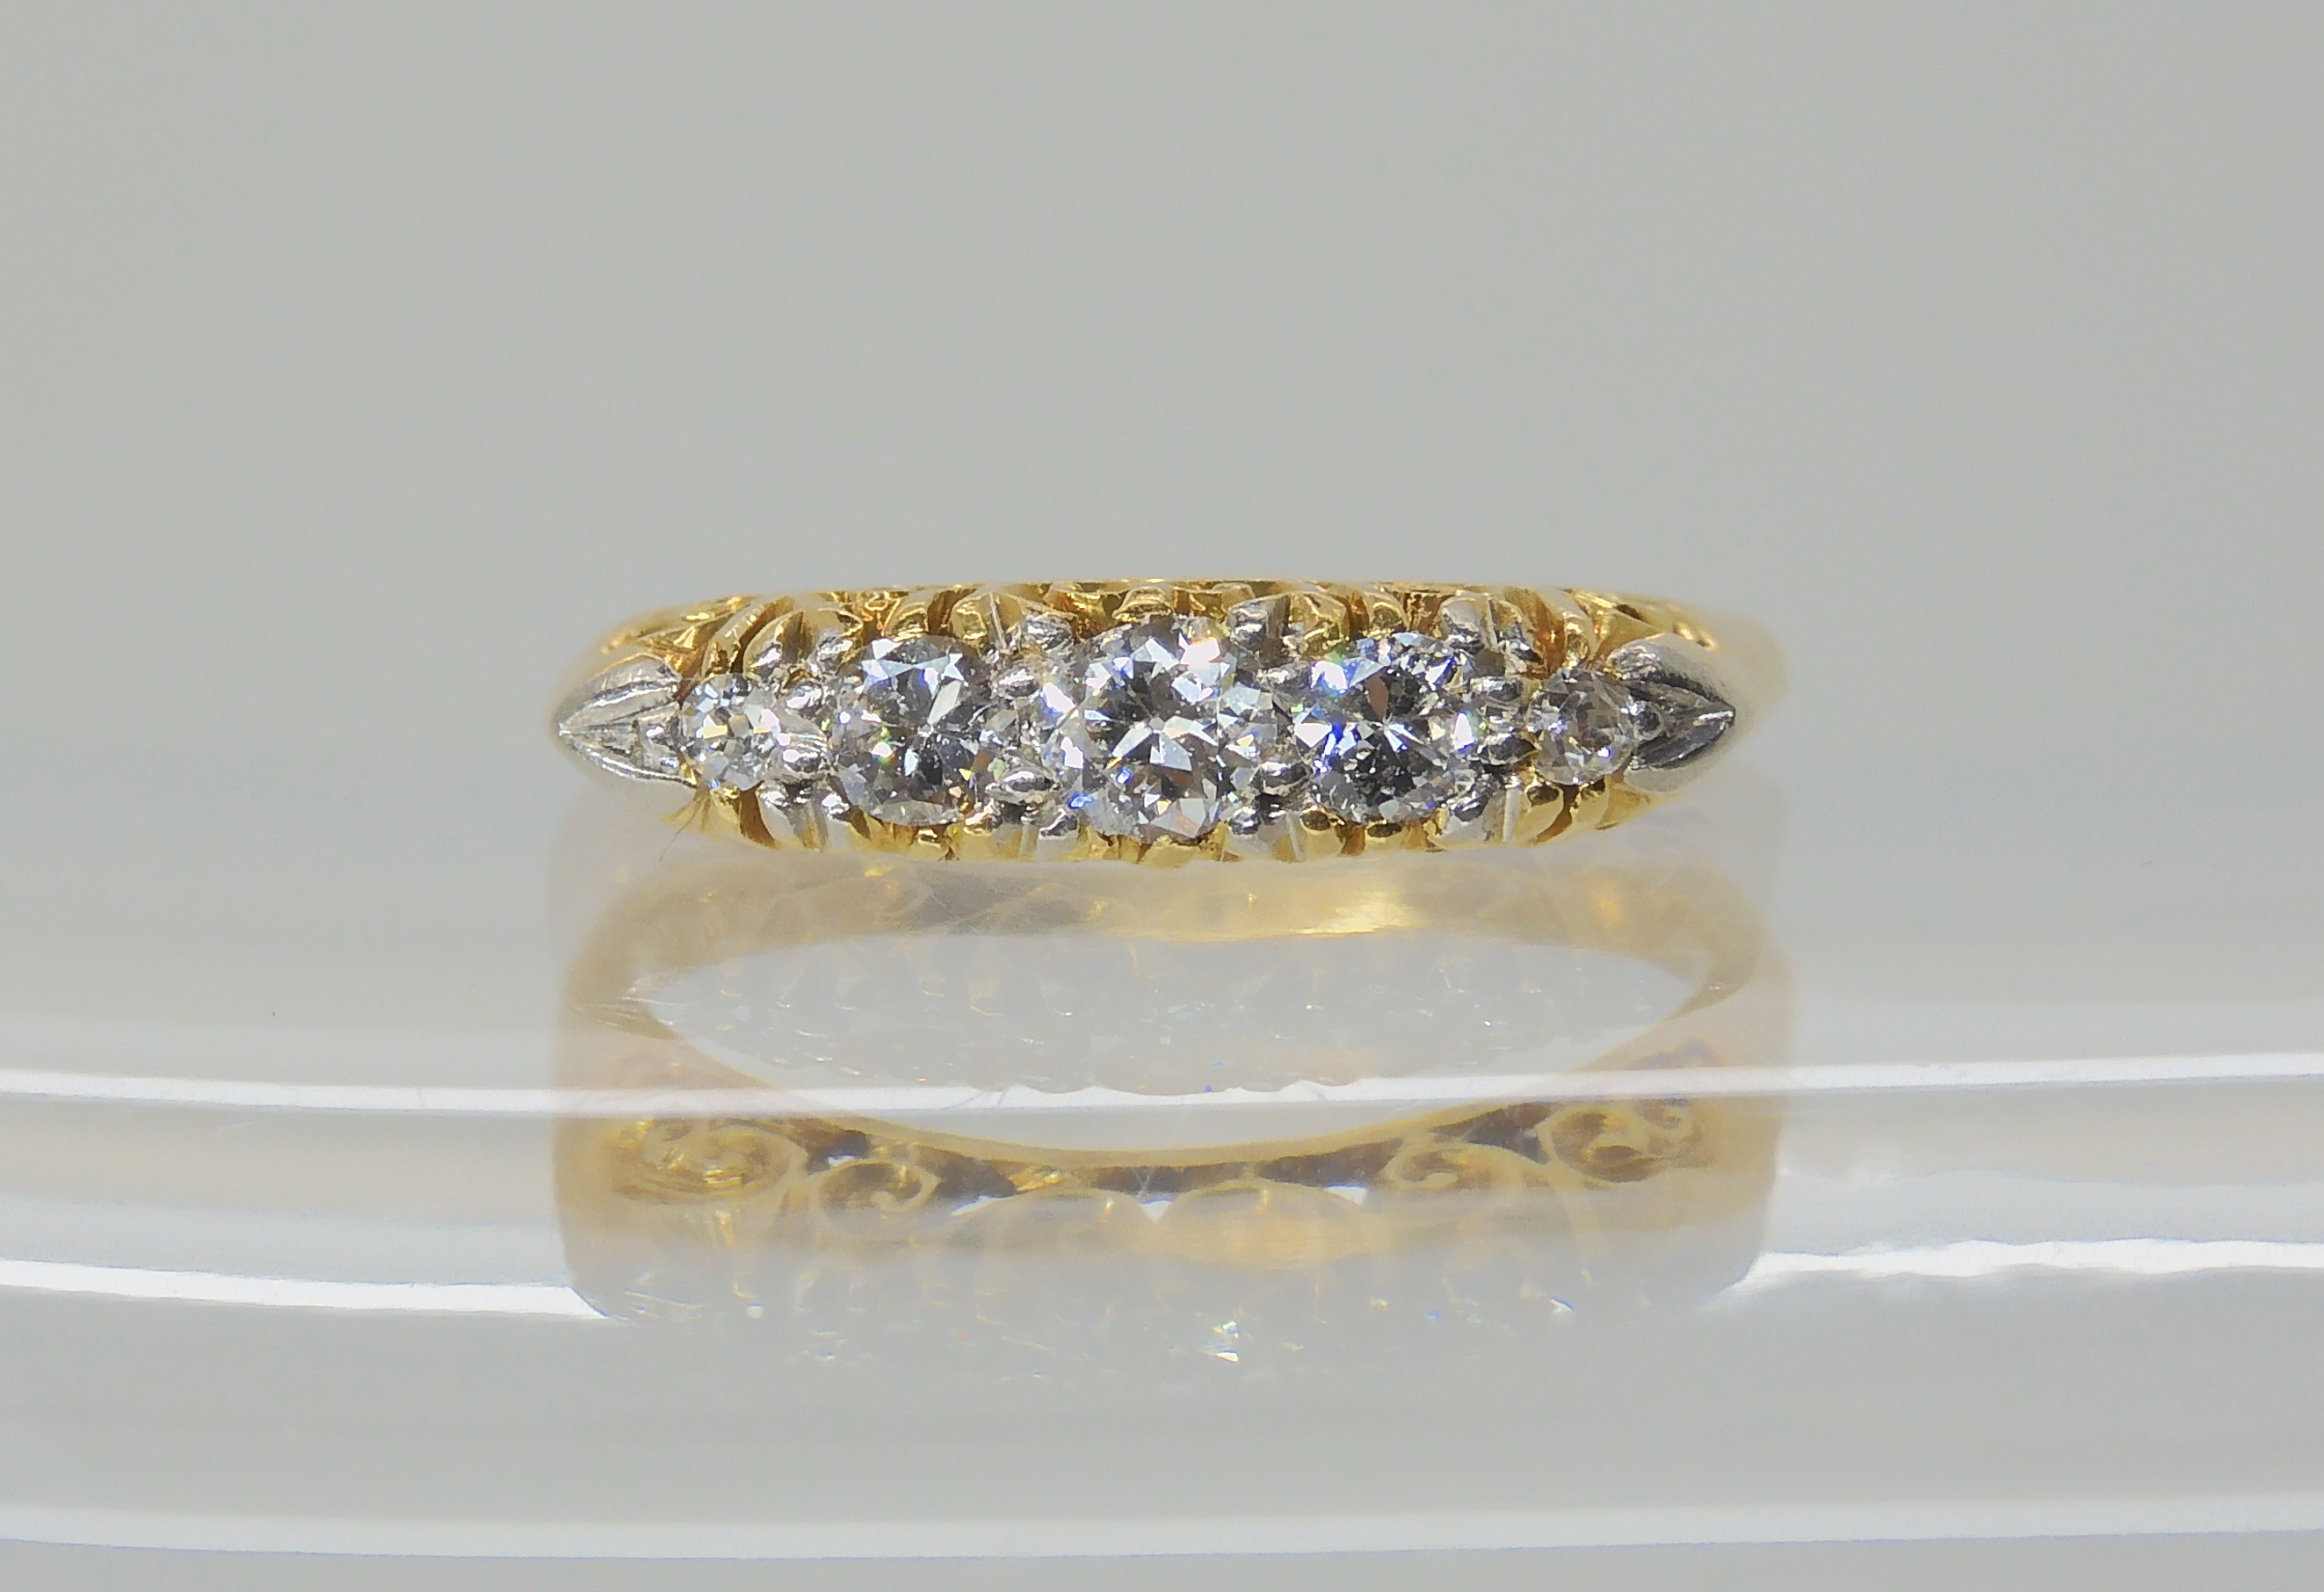 AN 18CT FIVE STONE DIAMOND RING set with estimated approx 0.28cts of brilliant cut diamonds, in a